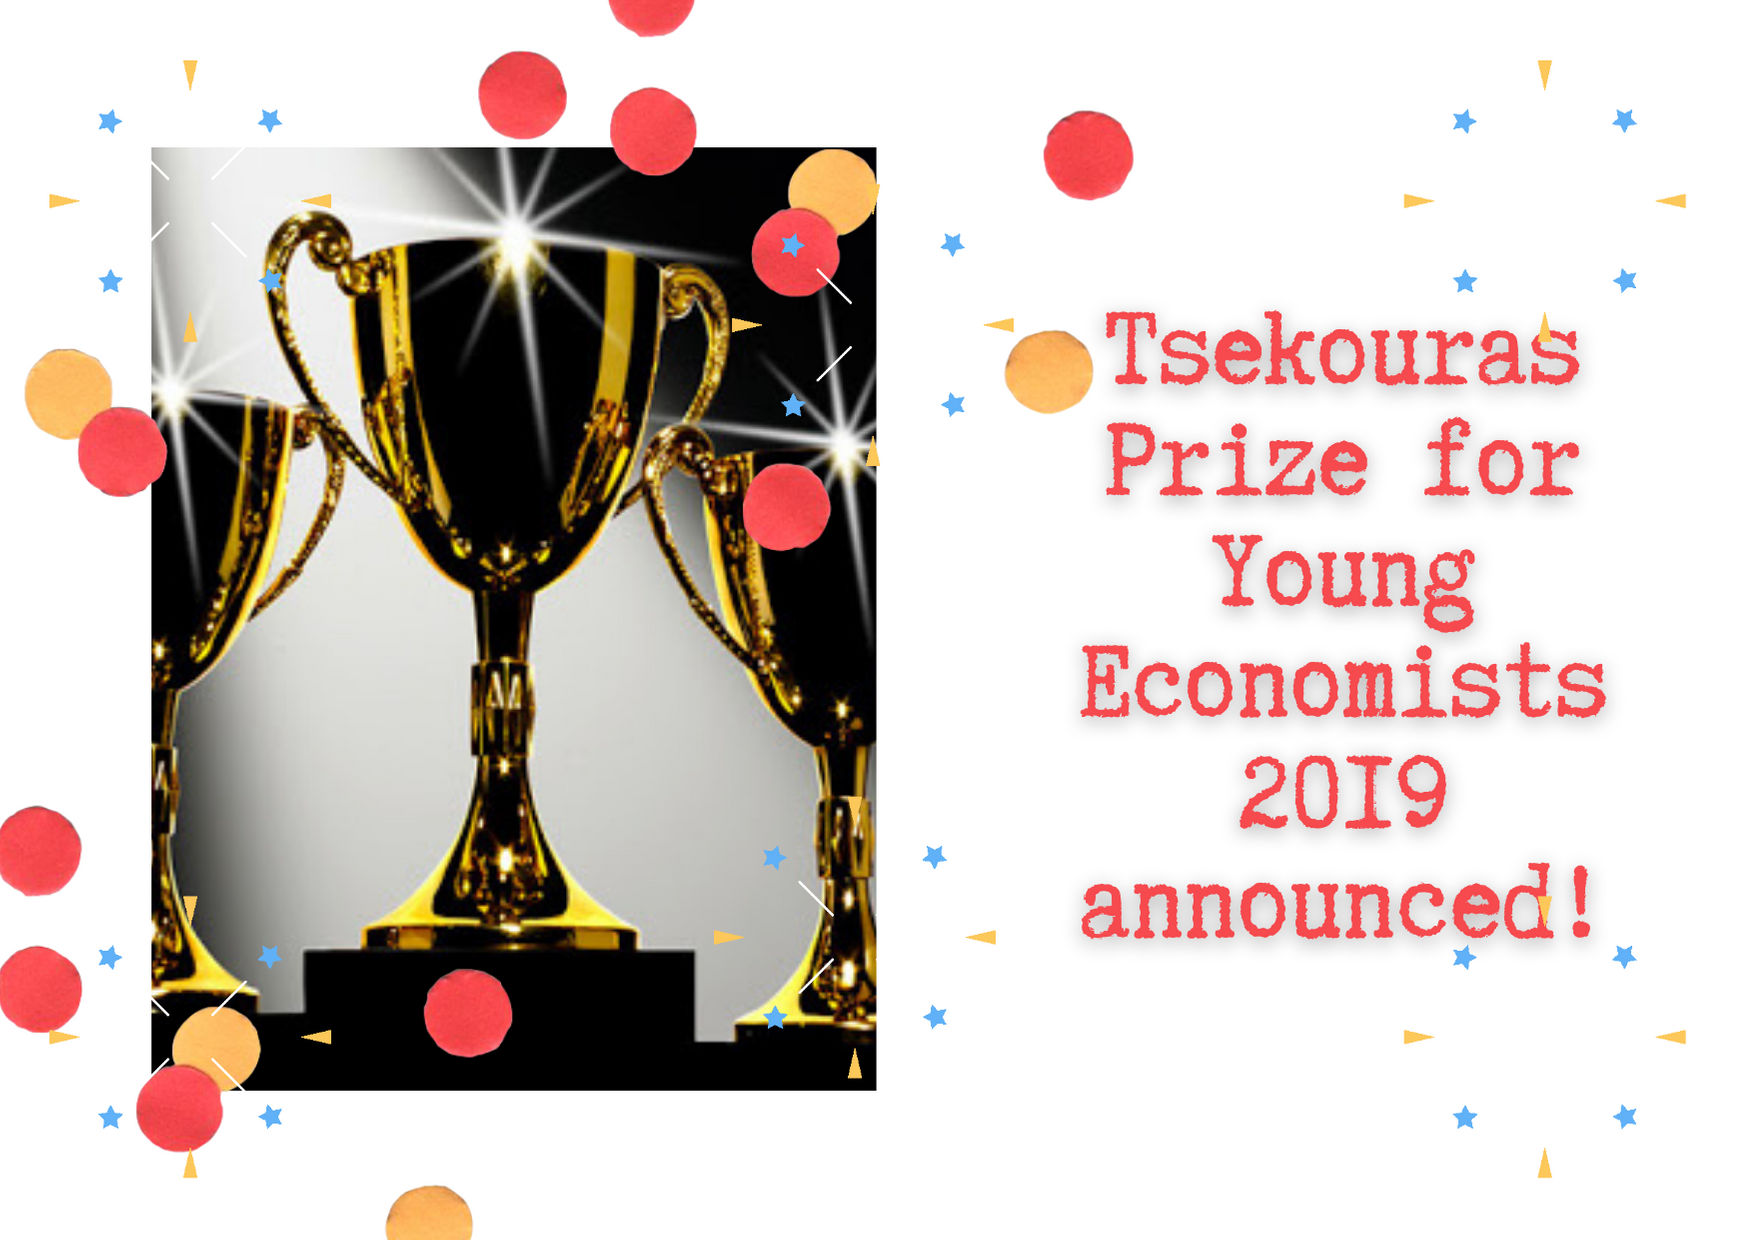 Tsekouras Prize for Young Economists winner 2019 announced!